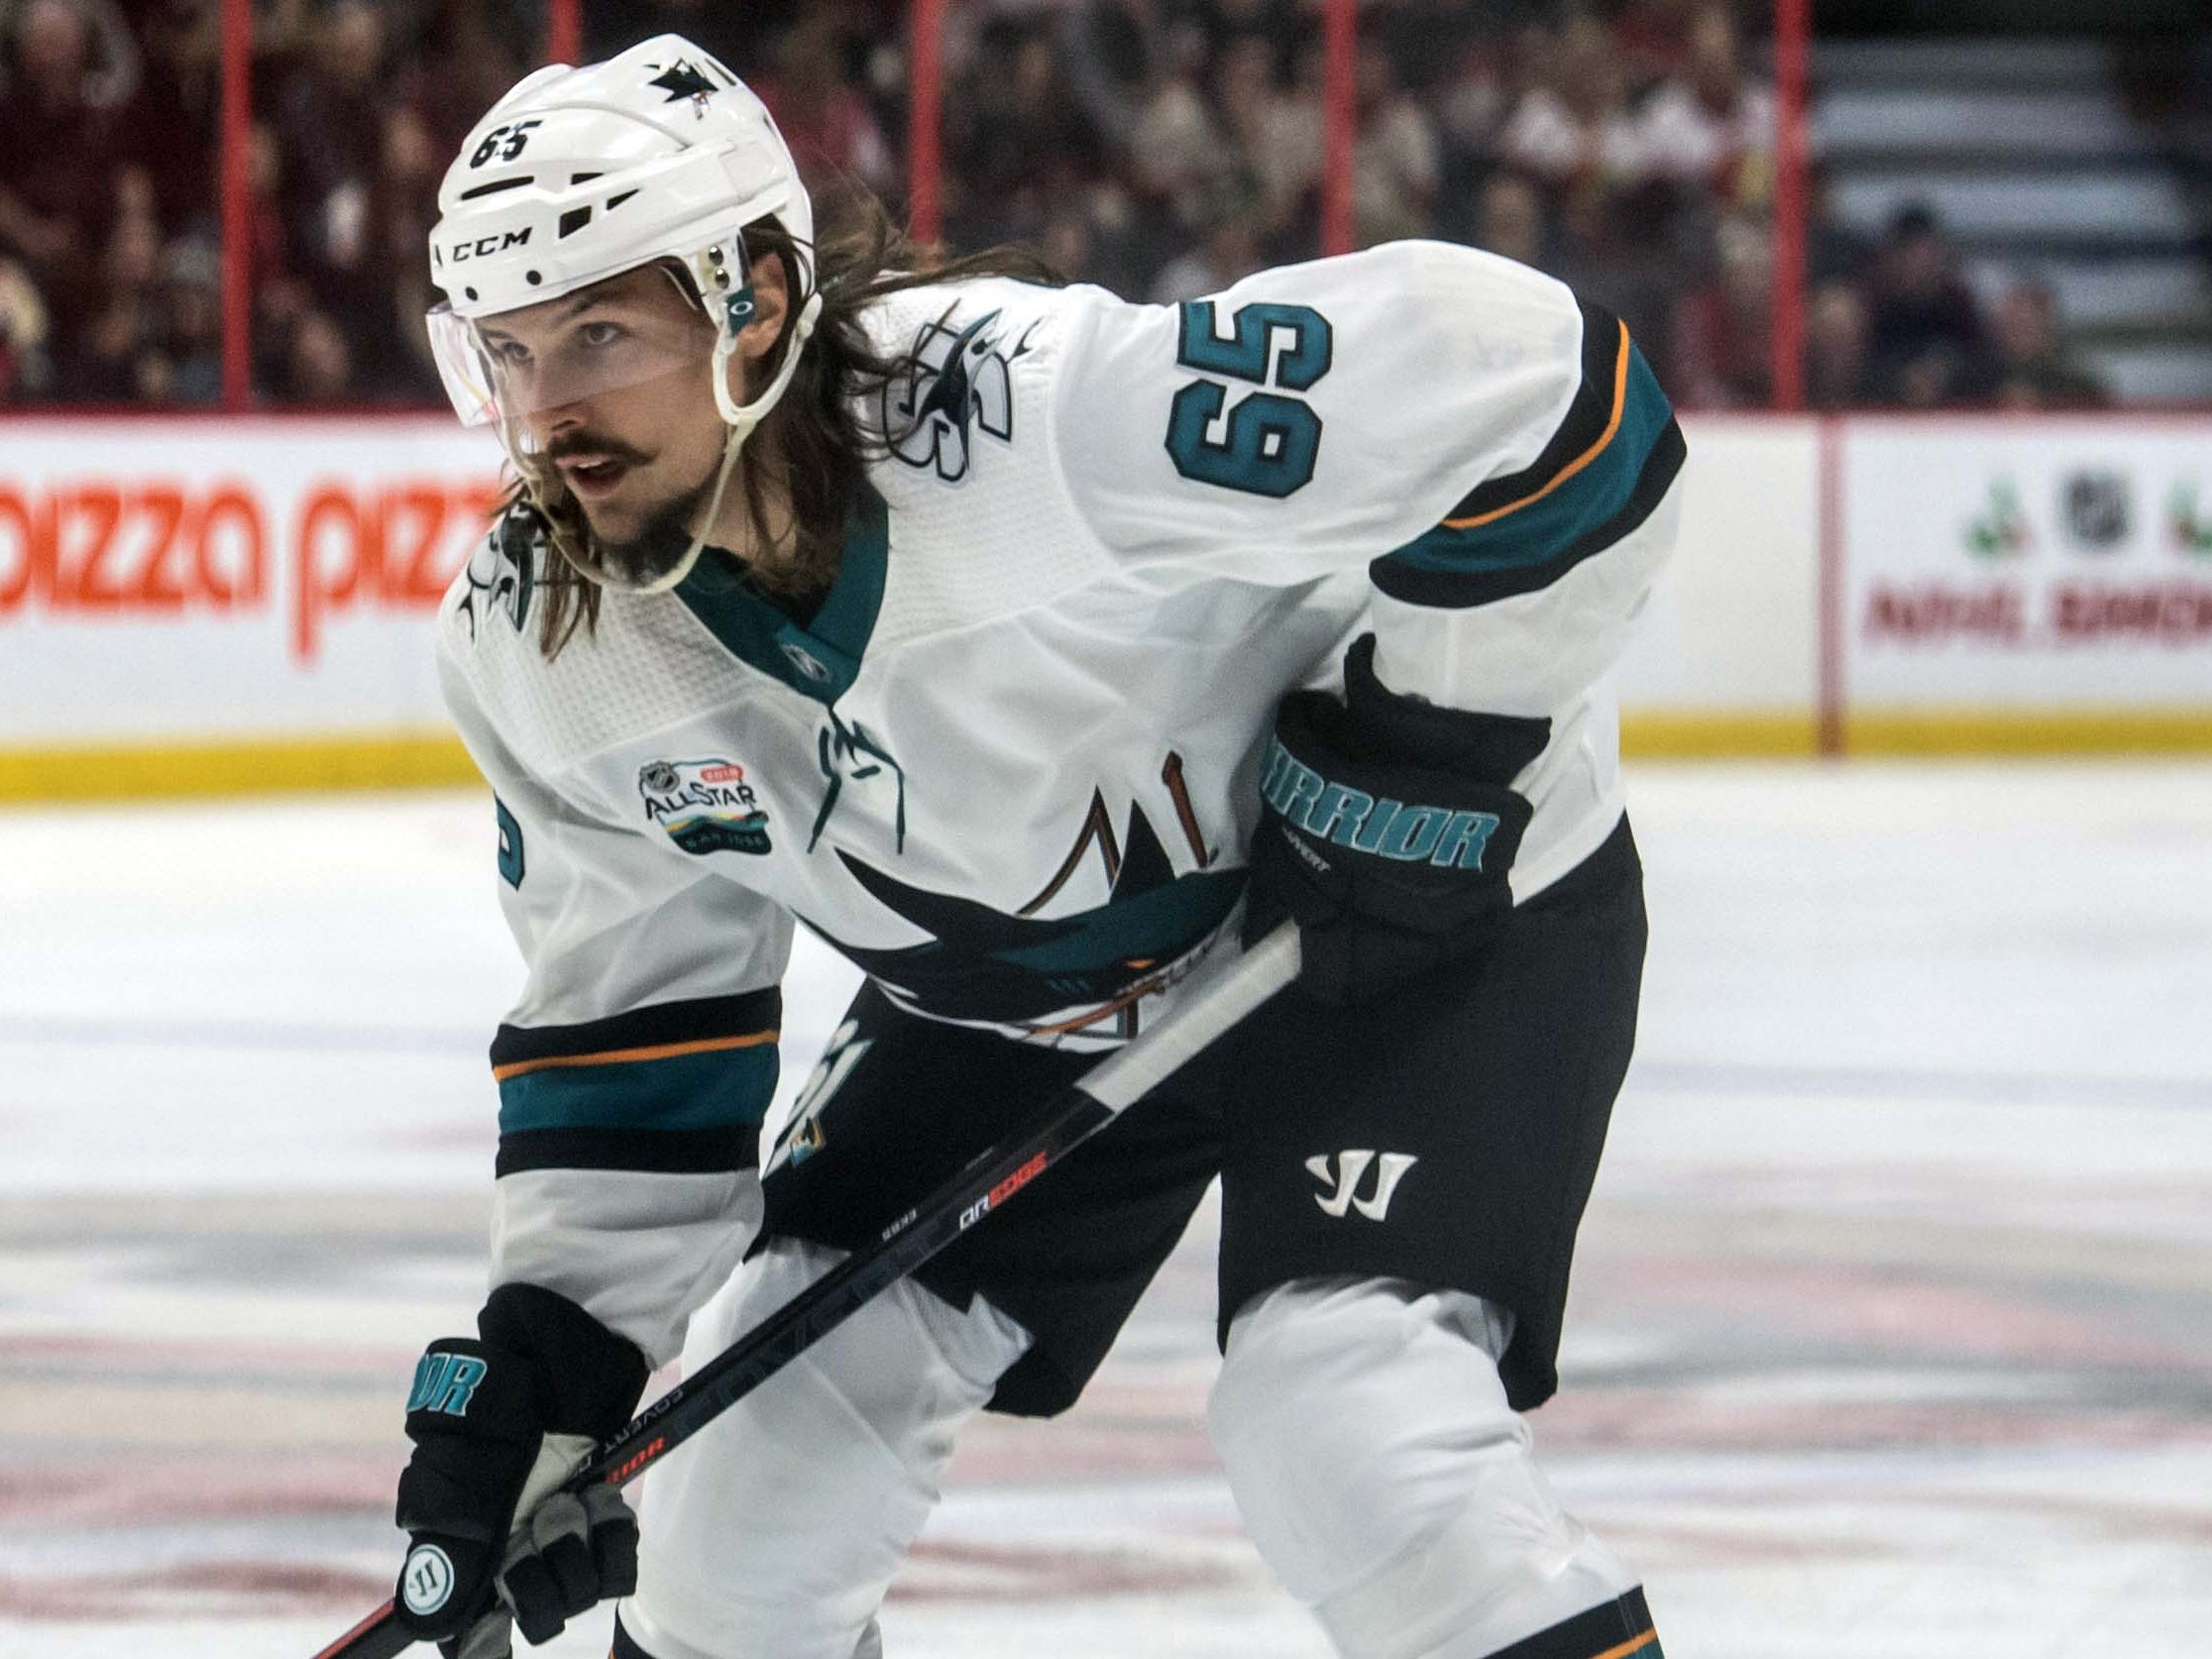 Dec. 23: San Jose Sharks defenseman Erik Karlsson was suspended for two games for an illegal hit to the head of the Los Angeles Kings' Austin Wagner. Lost pay: $69,892.48.